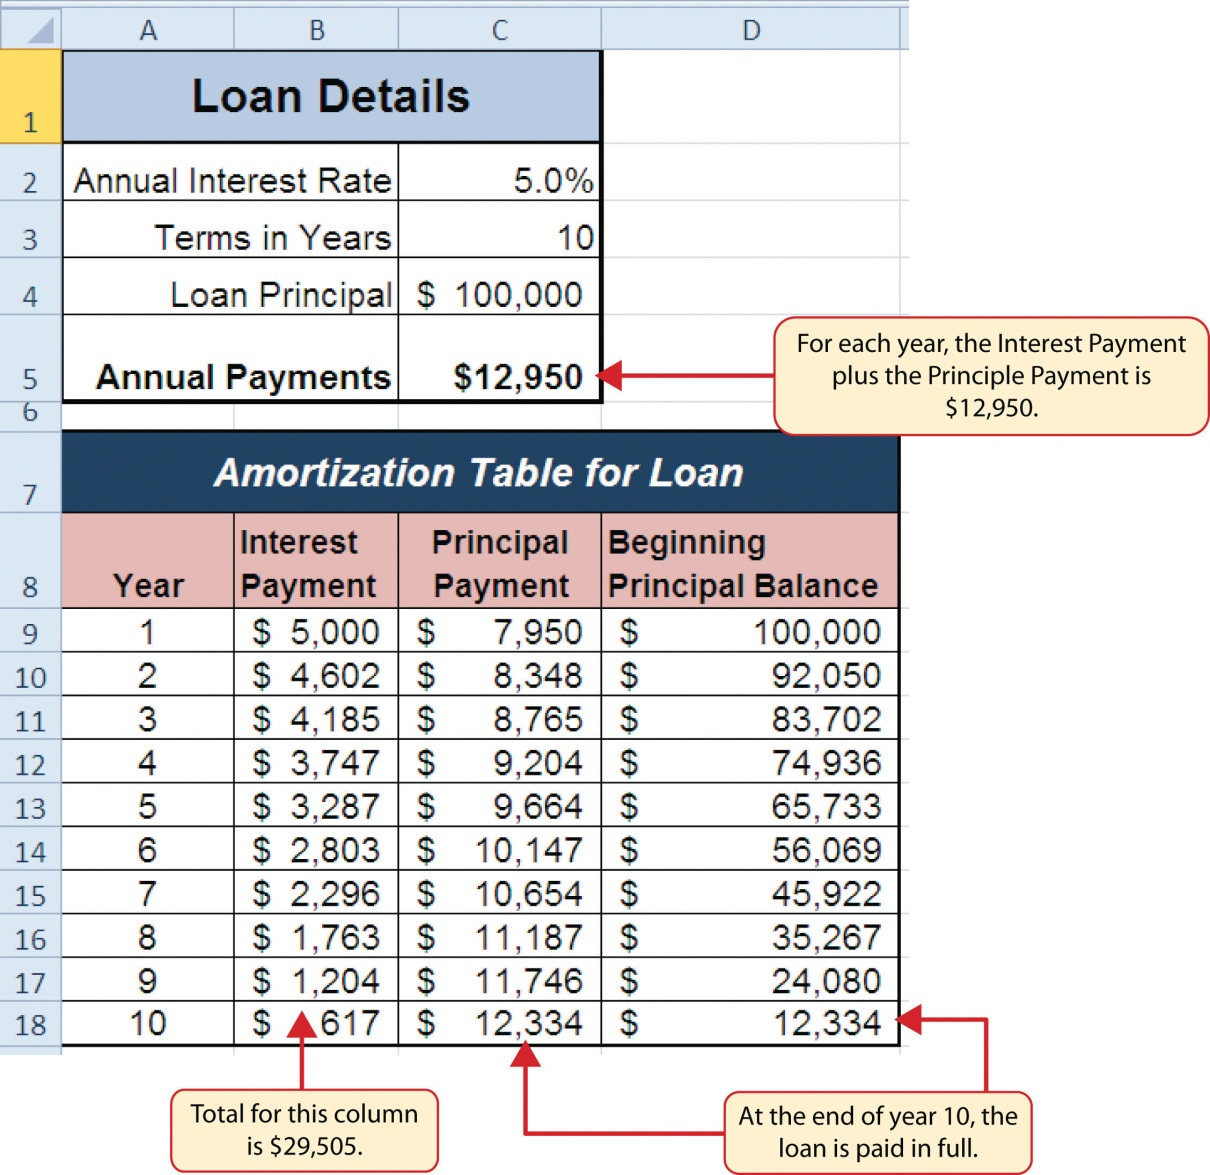 Amortization table for a $100,000 loan. For each year, Interest Payment plus Principal Payment is $12,950. At end of year 10, loan is paid in full.